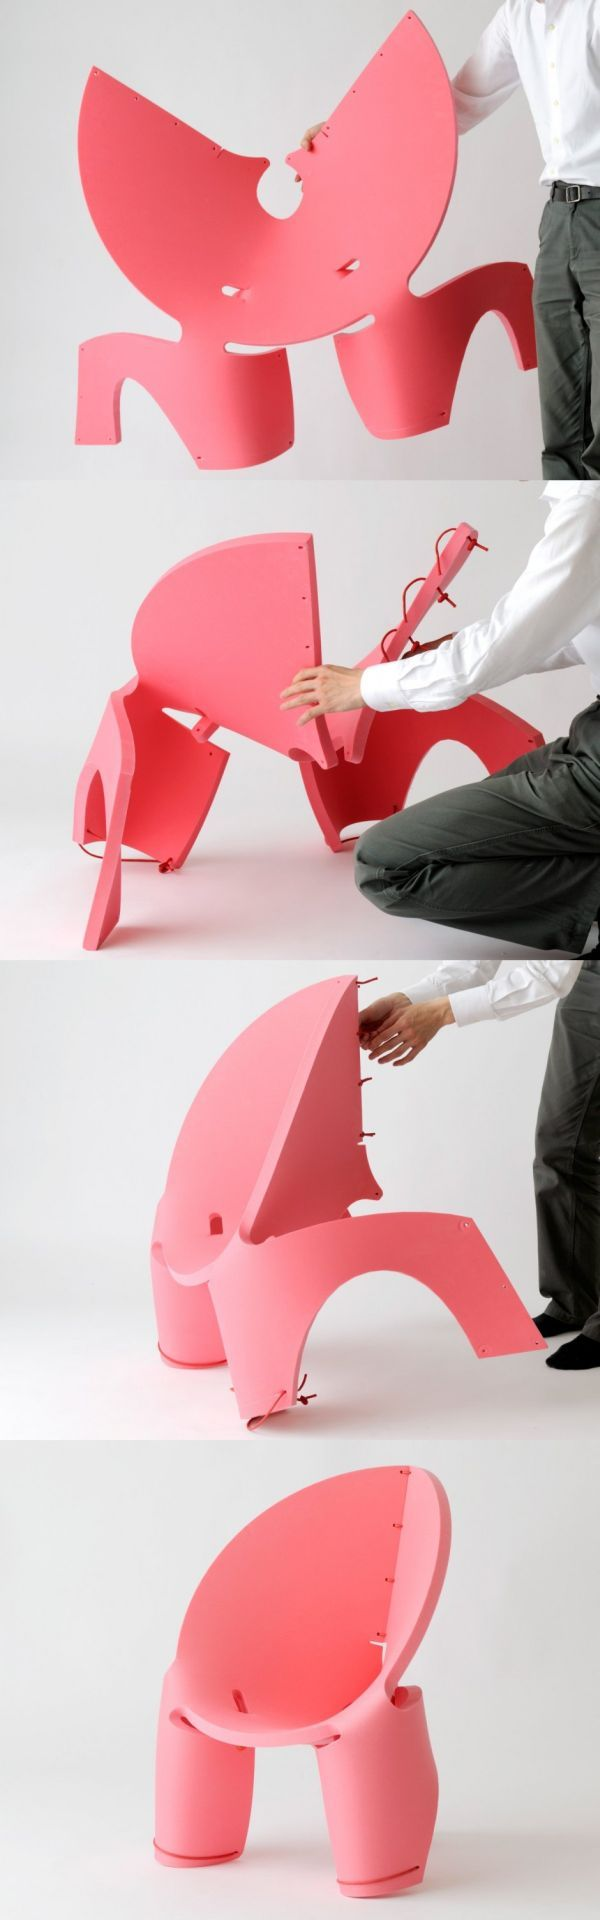 Portable seating sewn-up with the Eva Chair